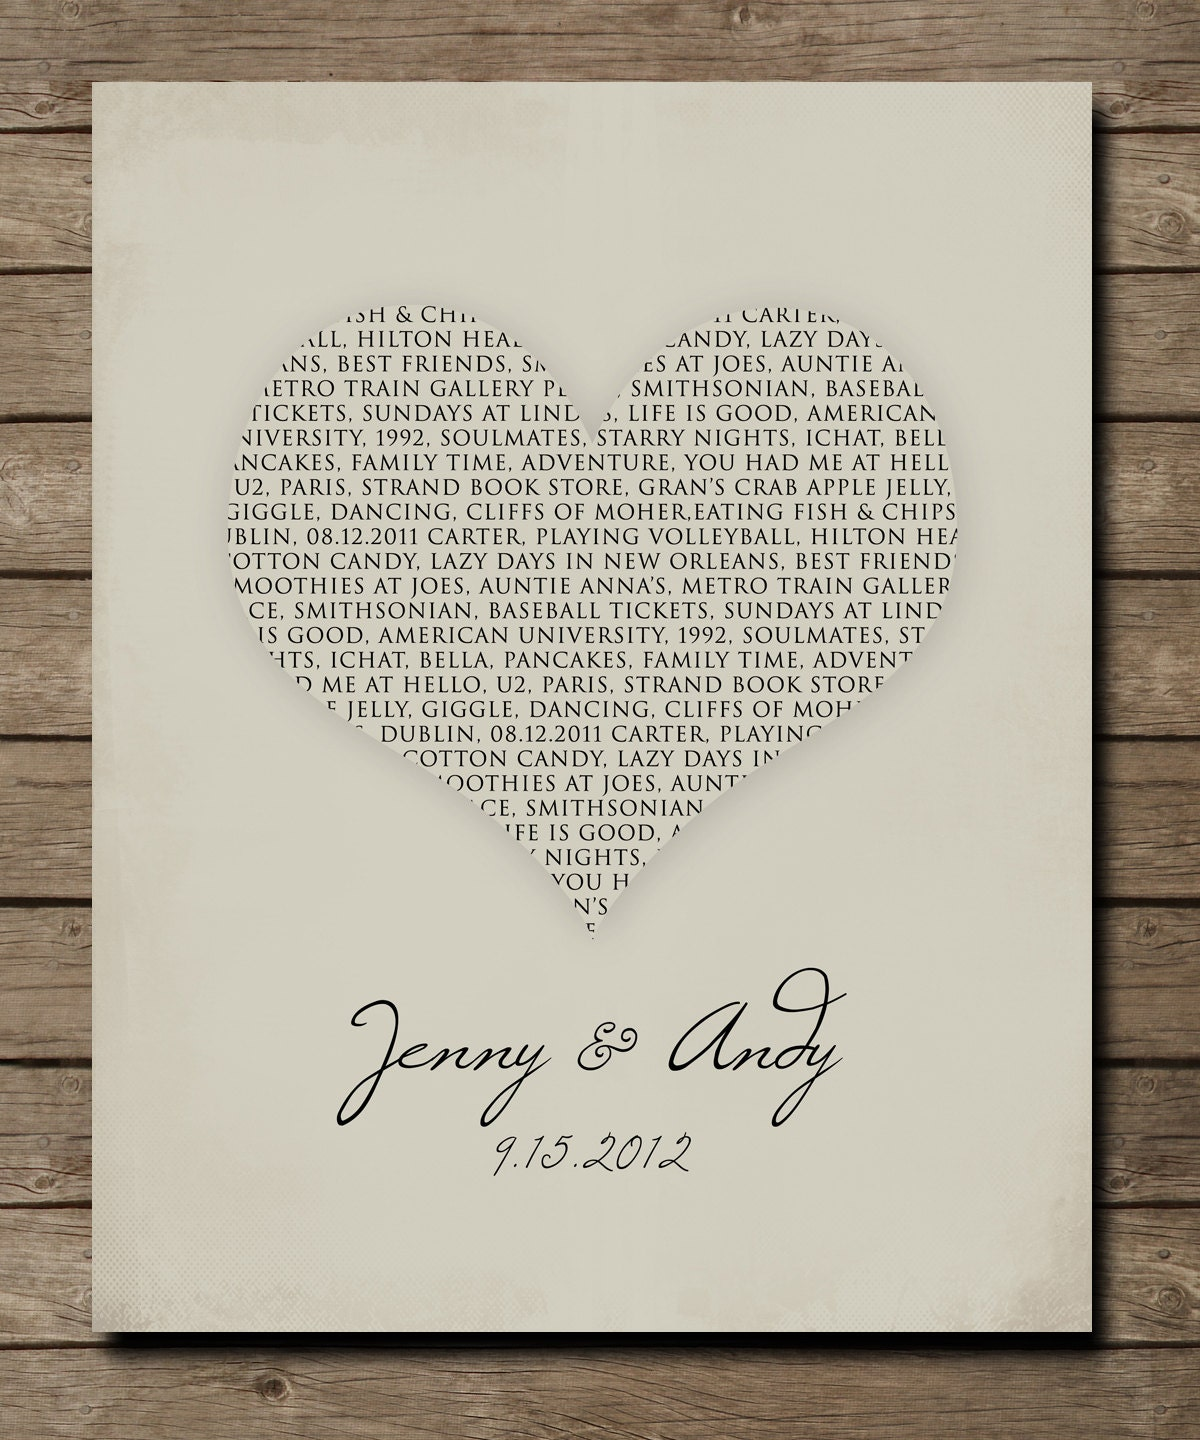 Cash Wedding Gift Calculator Uk : Personalized Wedding Anniversary Gift rustic vintage style